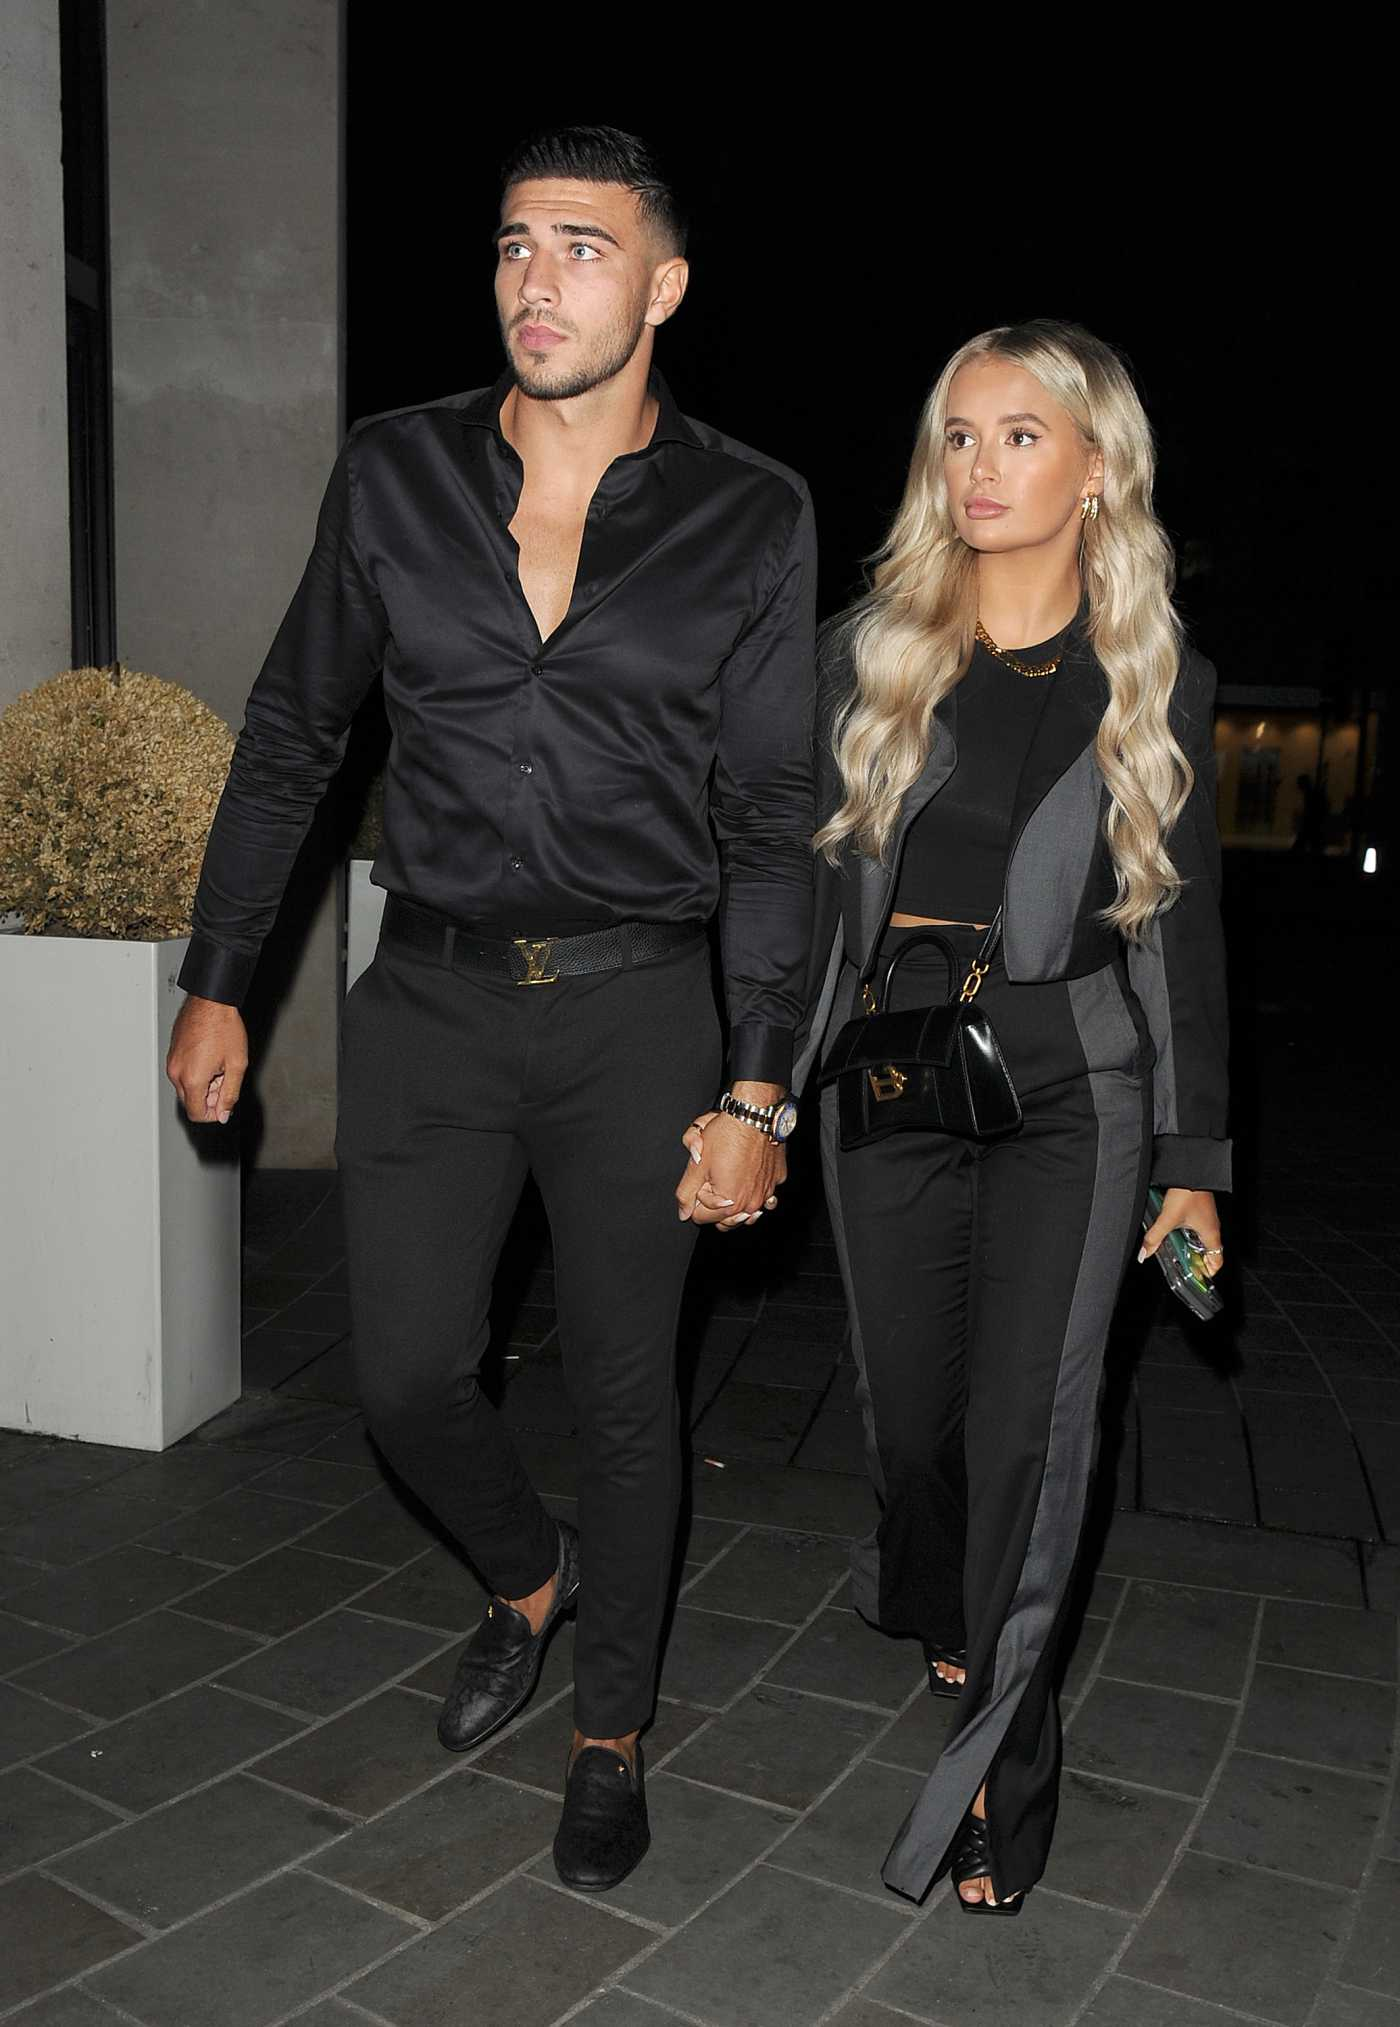 Molly-Mae Hague in a Black Top Out with Tommy Fury Arrives at STK Restaurant in London 08/29/2020